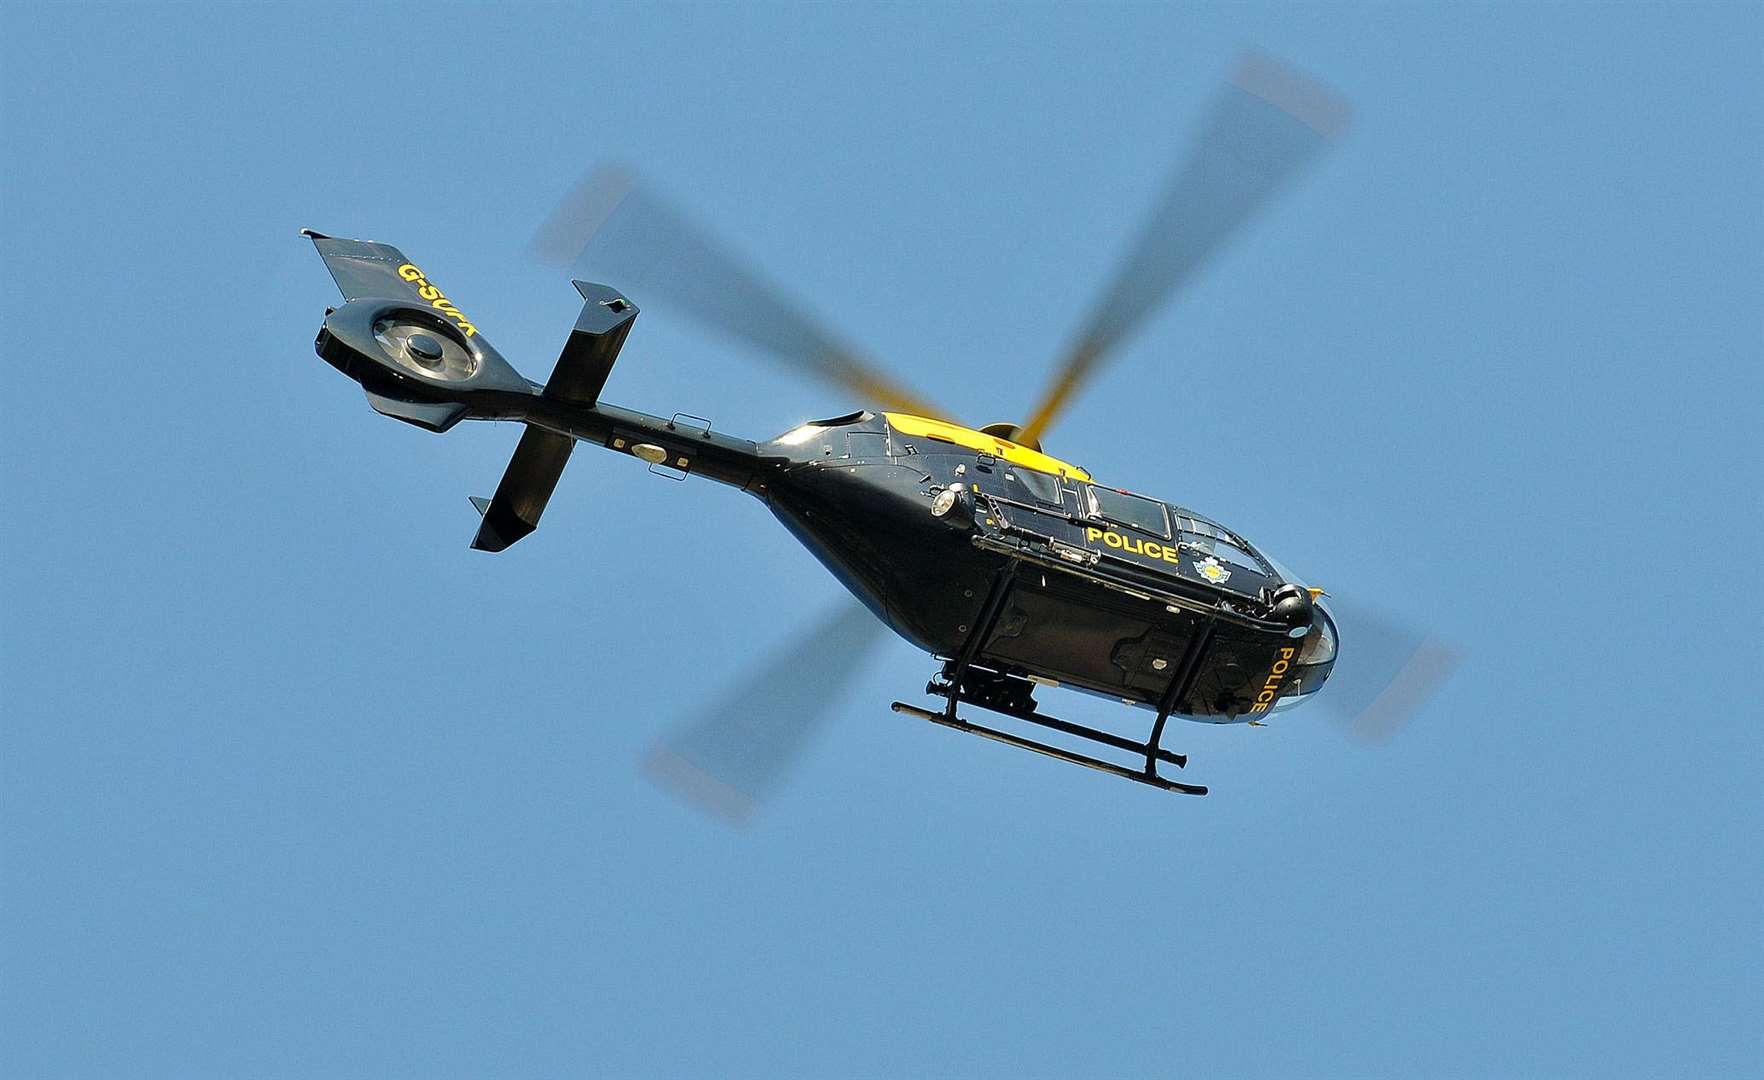 Police Helicopter. (6435343)